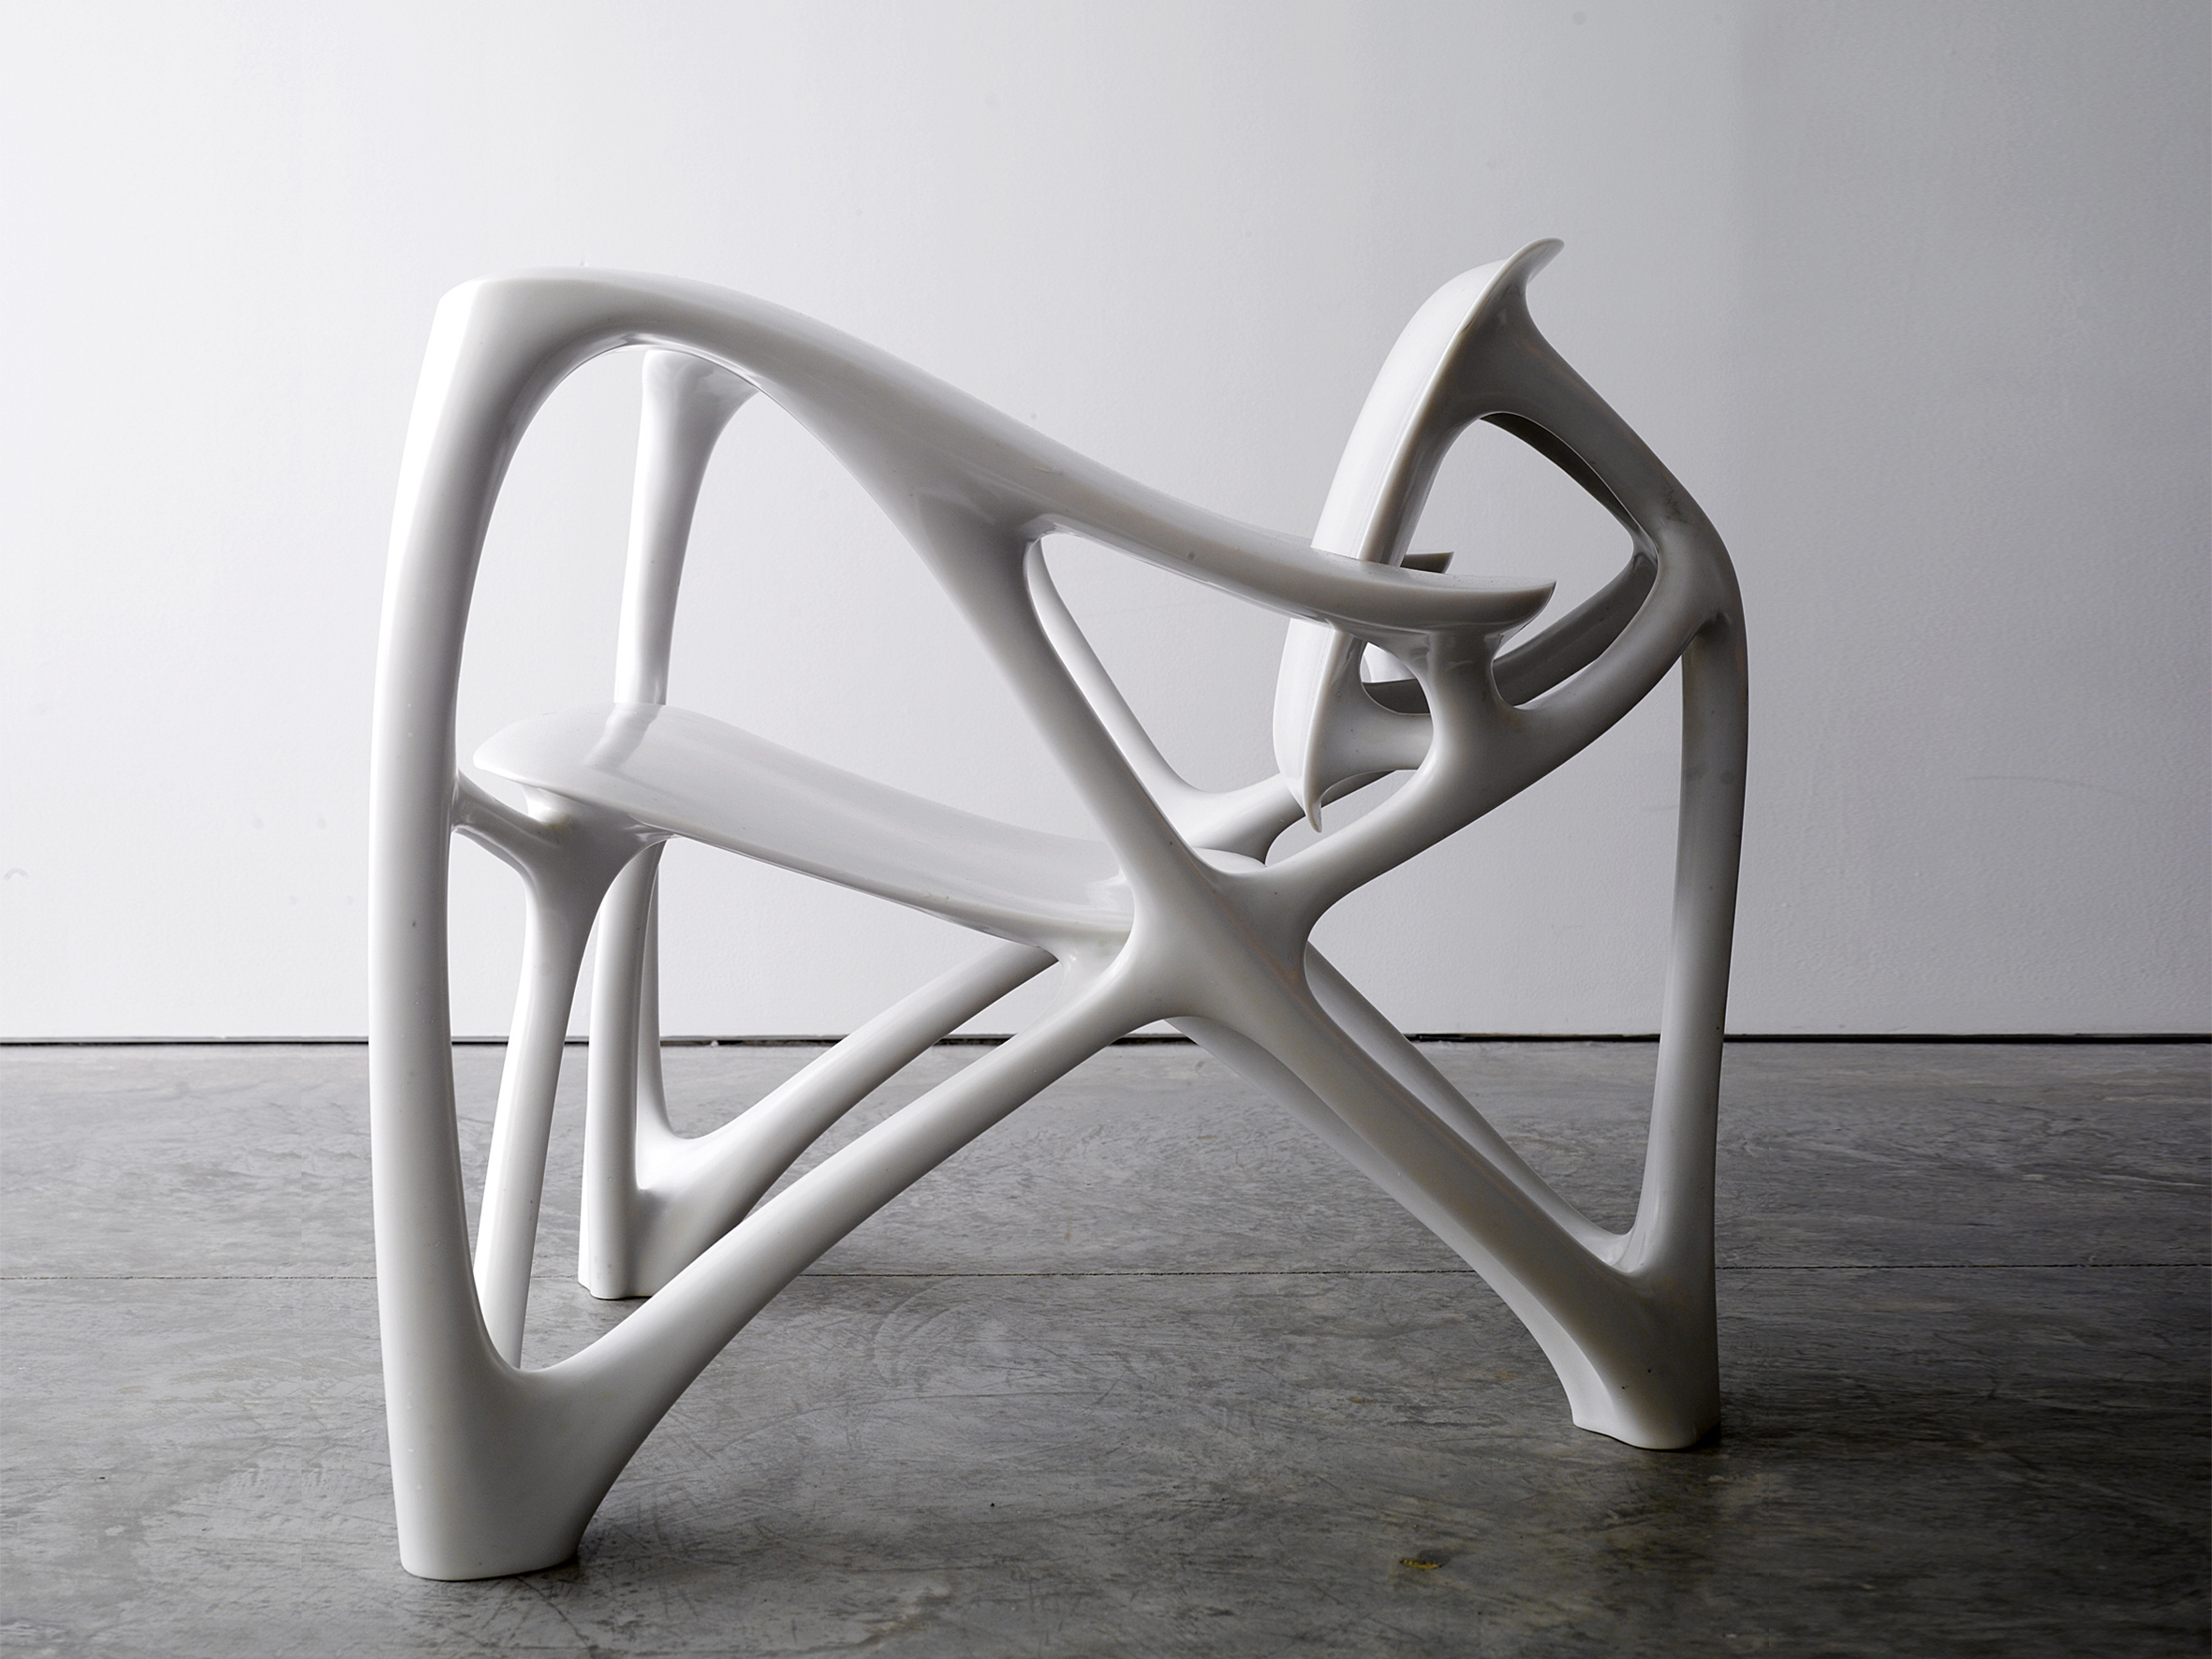 Armchair - Courtesy of Joris Laarman Lab